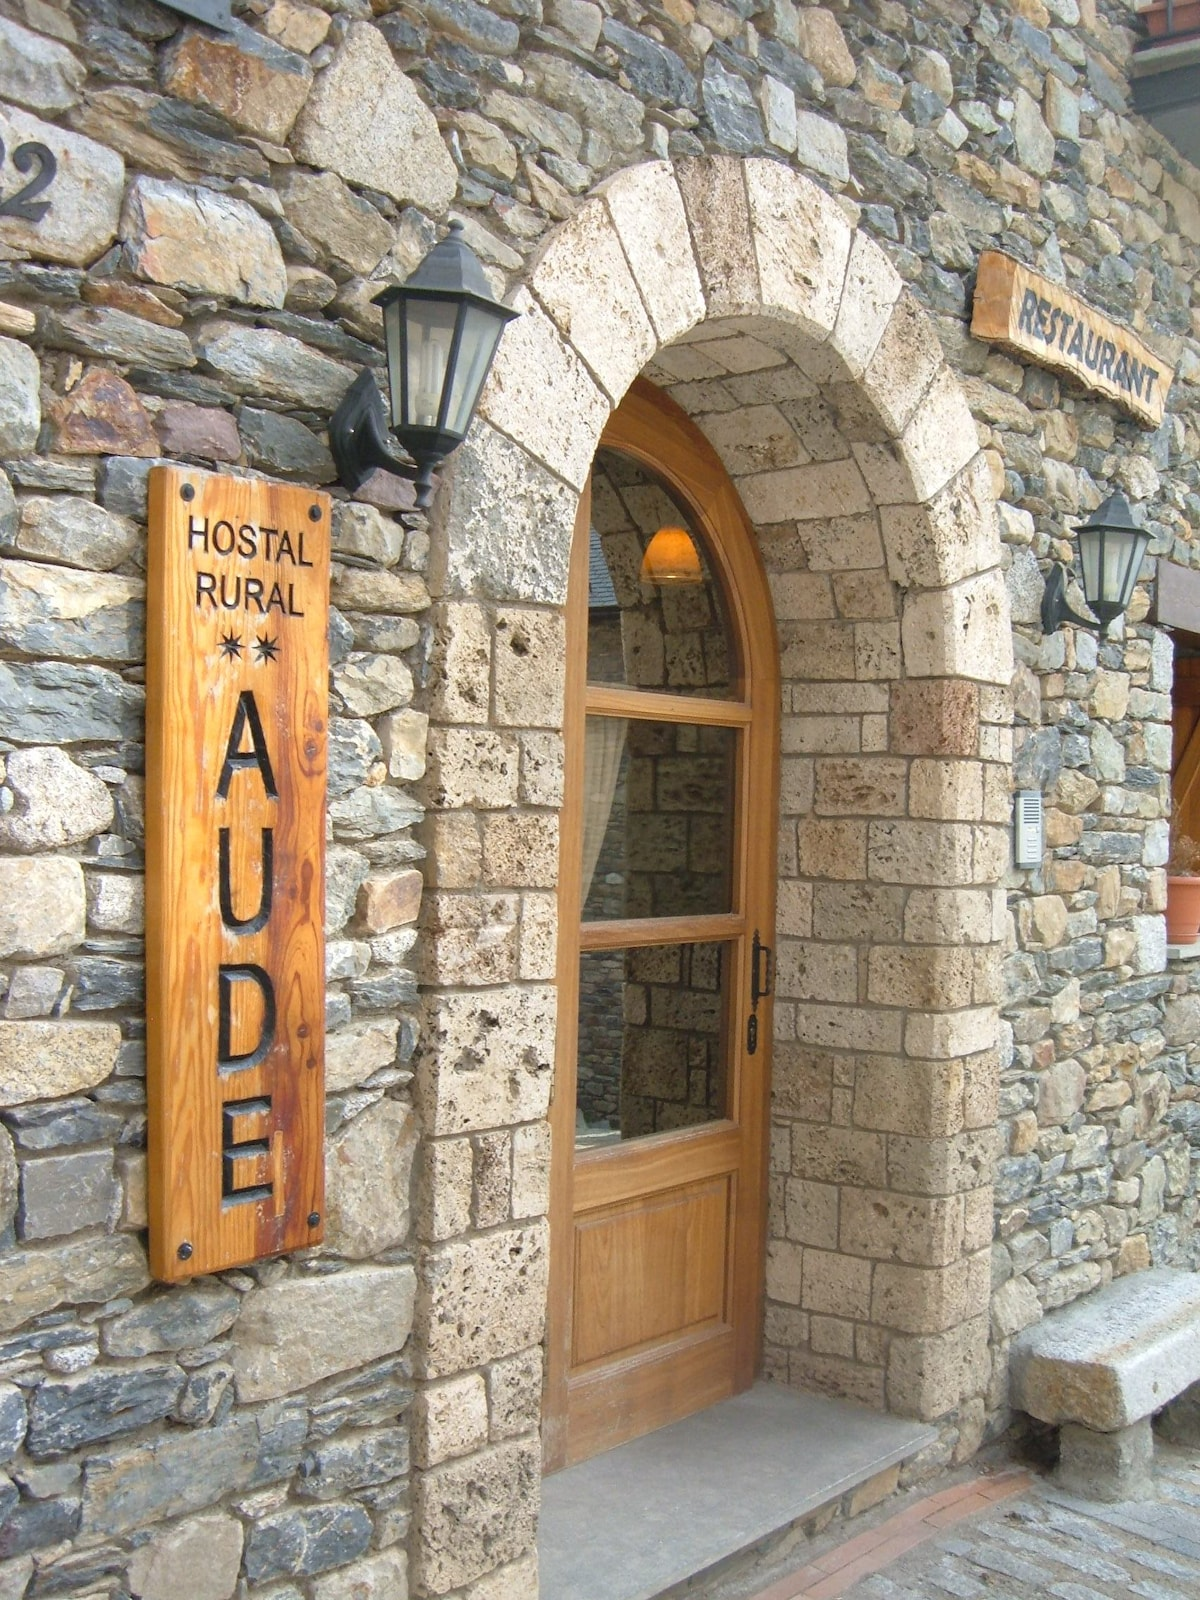 Hostal Aude from Durro